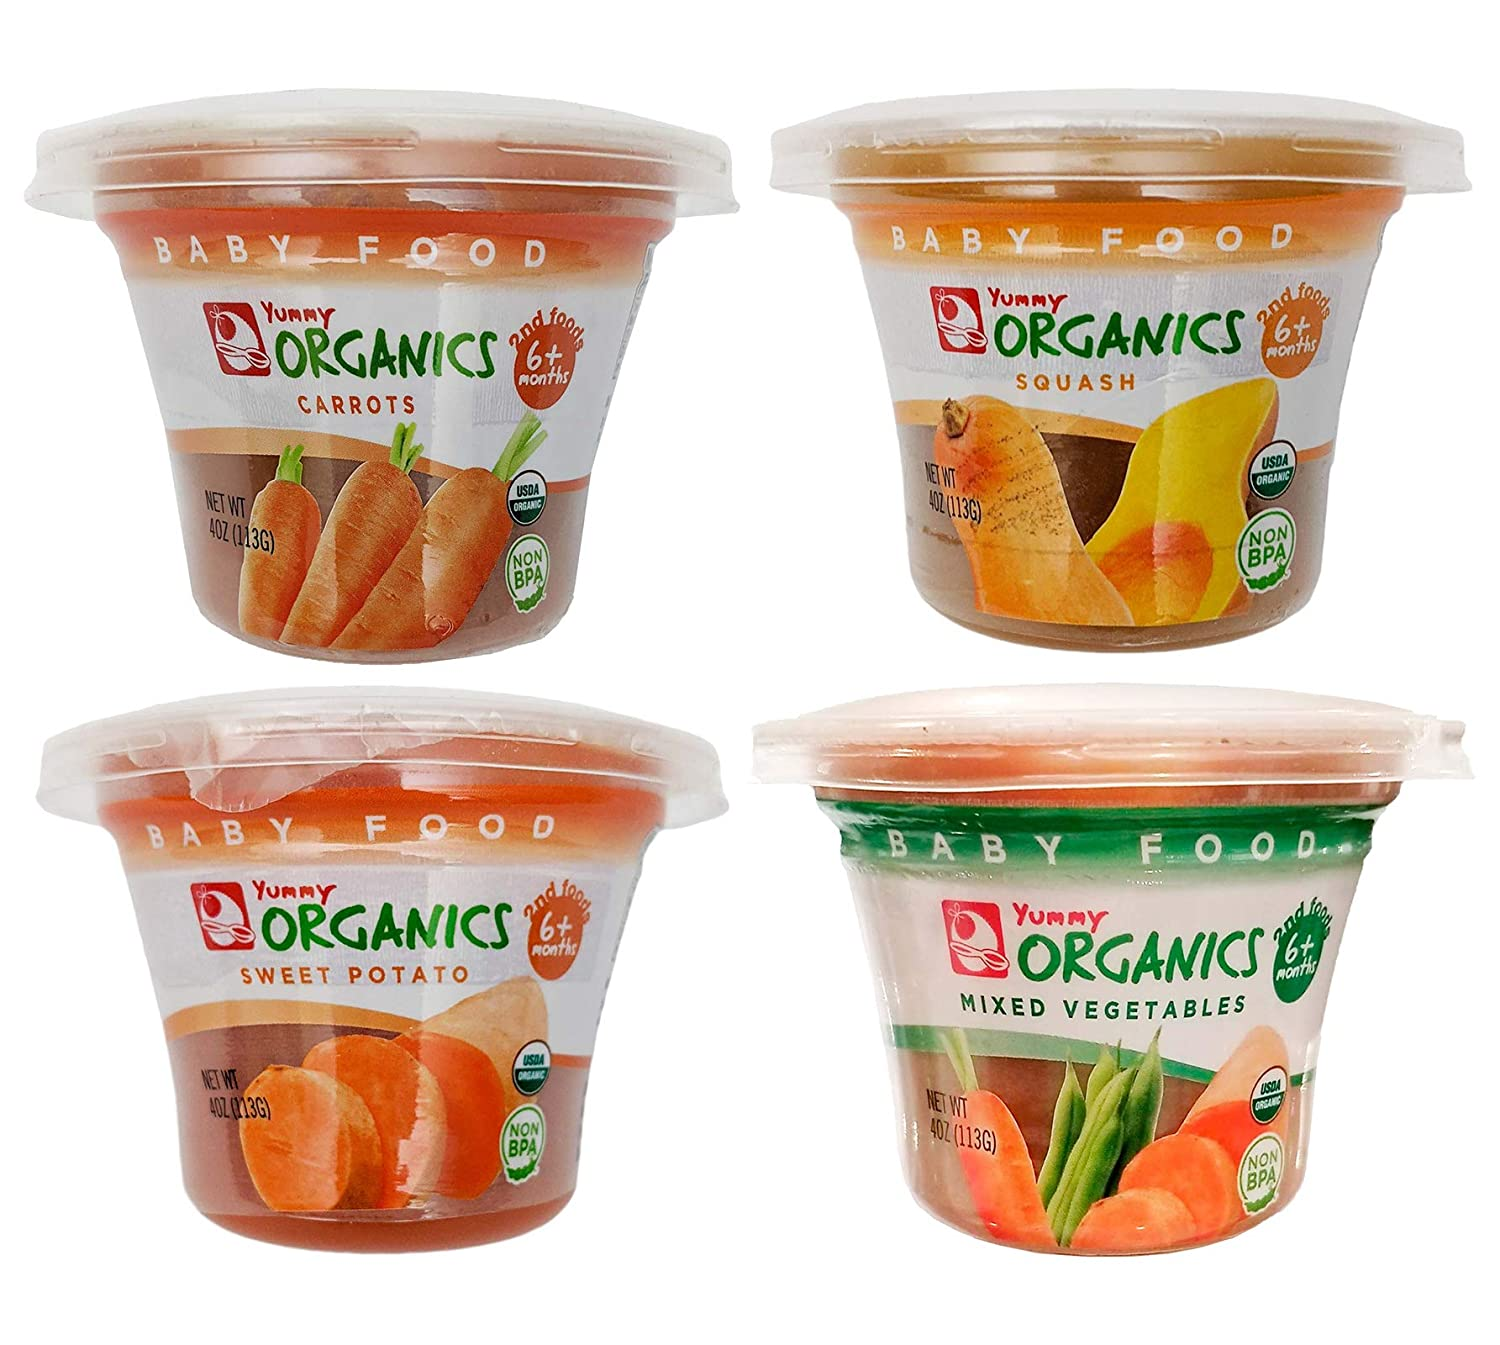 Yummy Organics Baby Food - Organic Puree, Non-GMO, Gluten-Free, No Added Sugar or Salt, Resealable and Reusable BPA-Free Cups, Vegetable Variety Pack (Carrots, SwtPot, Squash, Mixed Veggies), 12 Pack